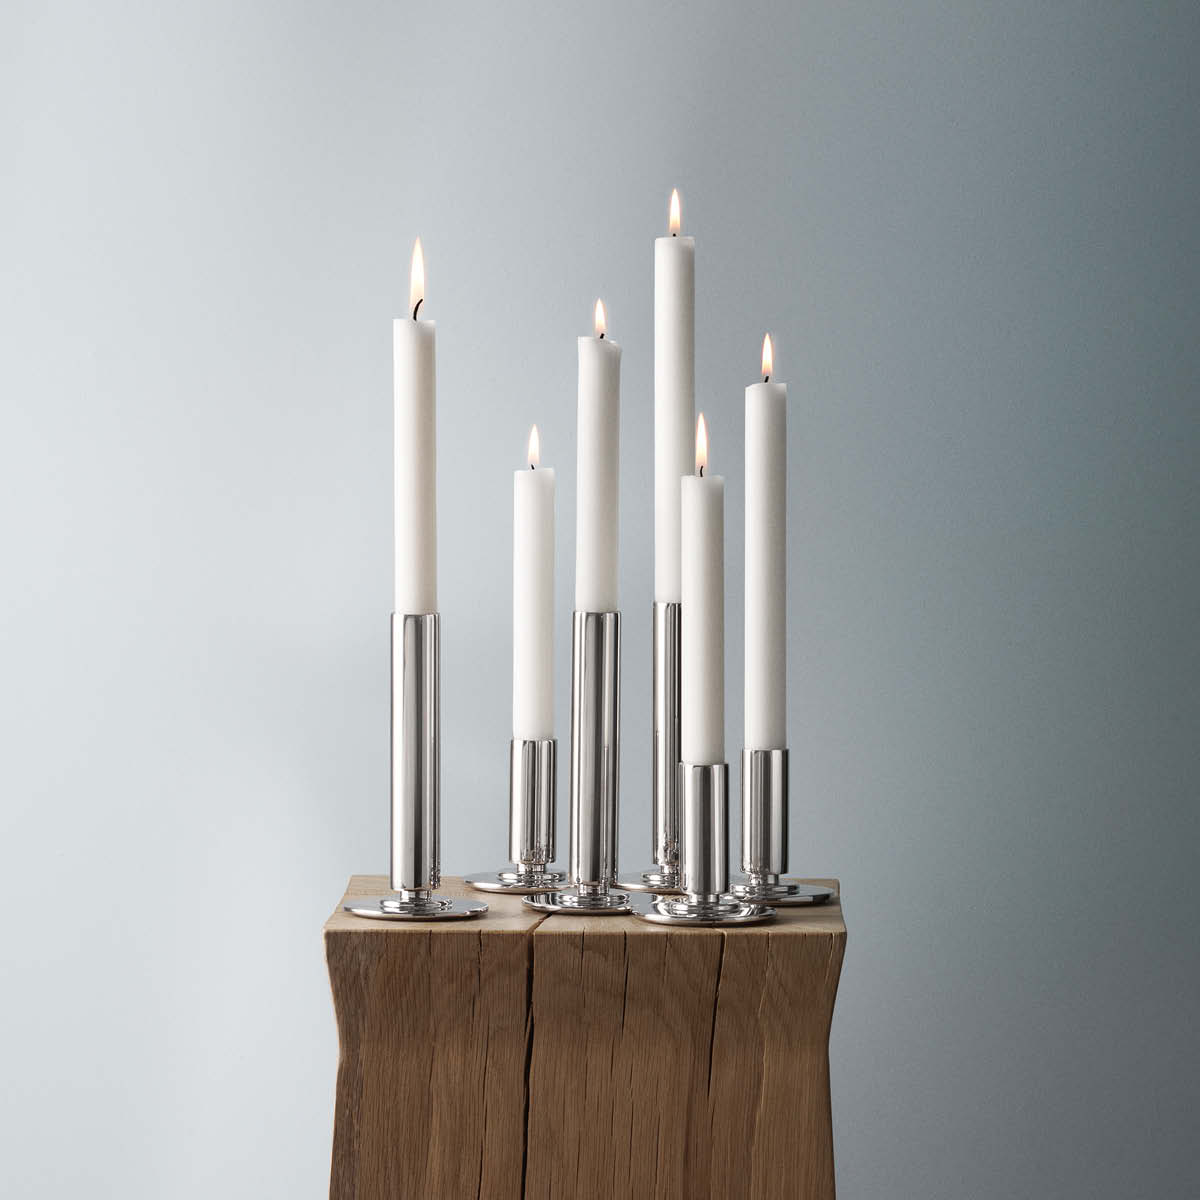 Manhattan candle holders (small and large) in mirror polished stainless steel